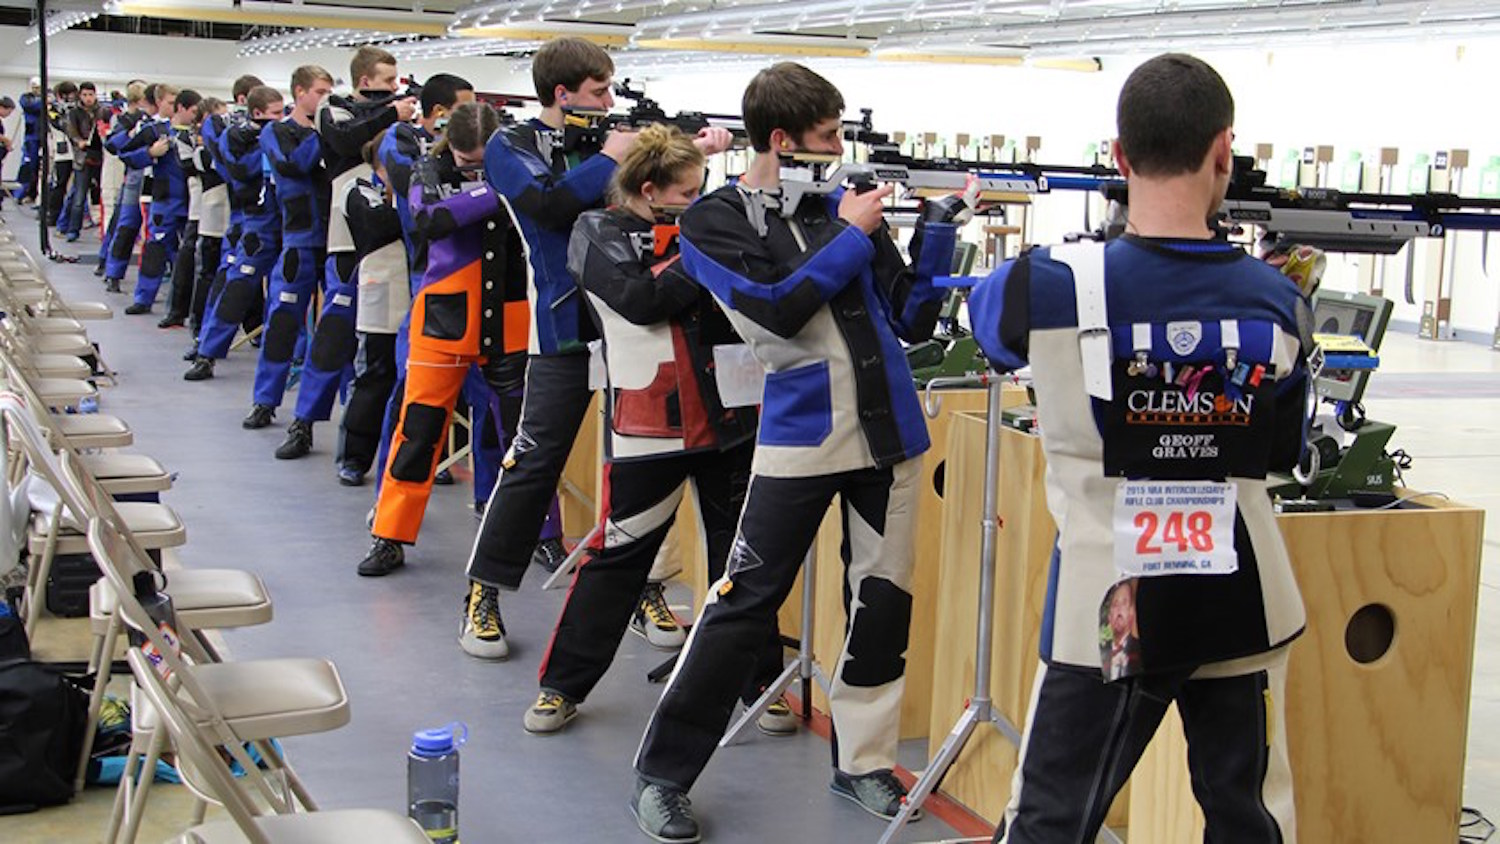 NRA Intercollegiate Pistol, Rifle Club Championships Return To Fort Benning This Weekend